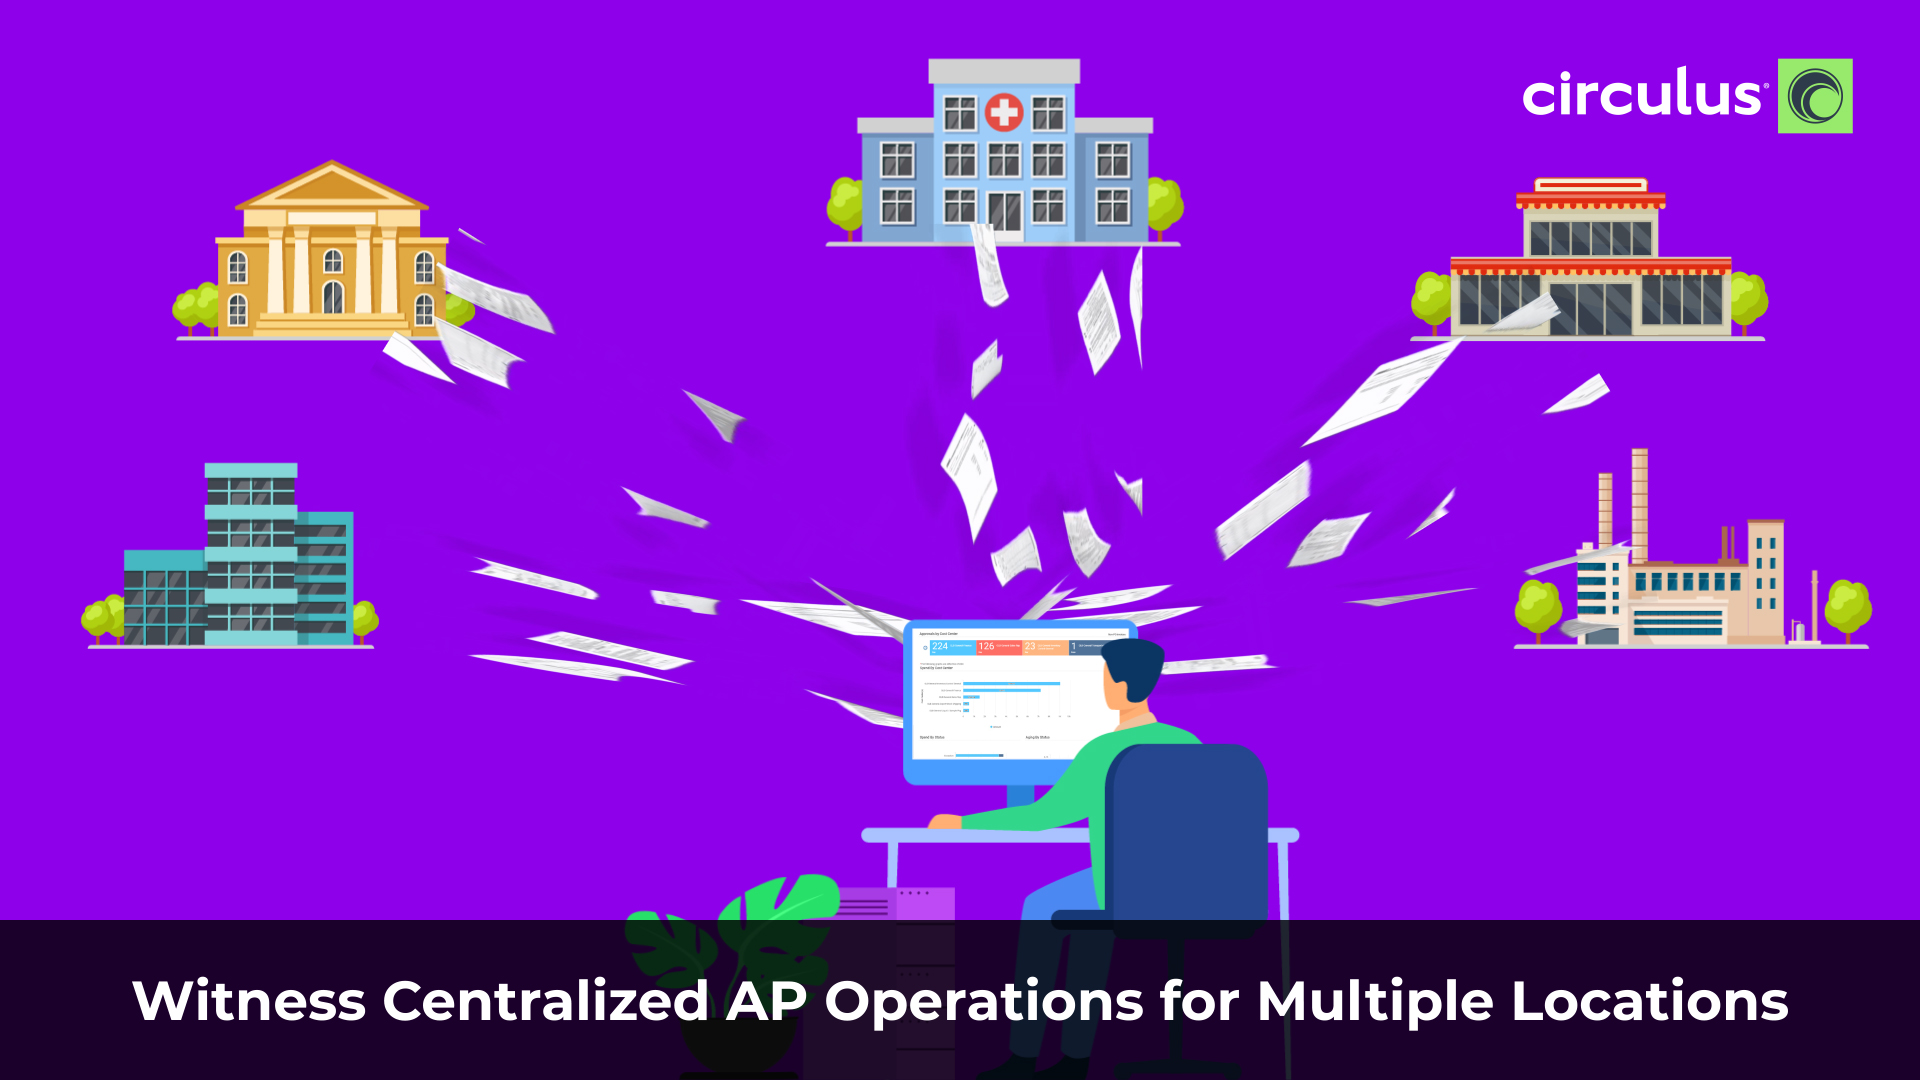 Witness Centralized AP Operations for Multiple Locations